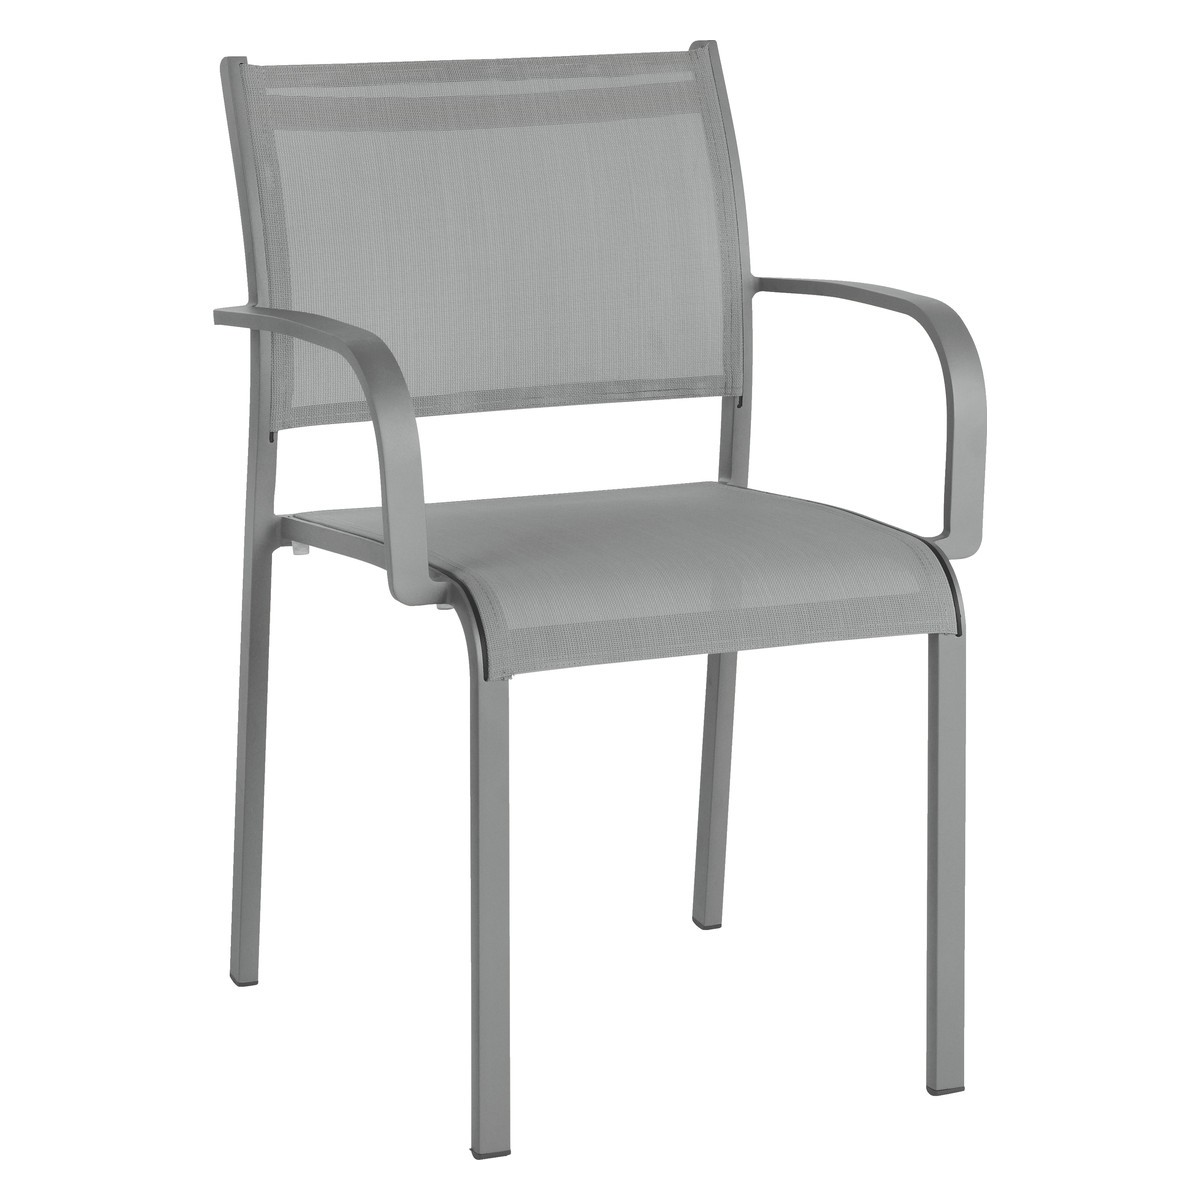 garden chairs willsden grey stackable garden chair promotion. previous next PSCSCWG